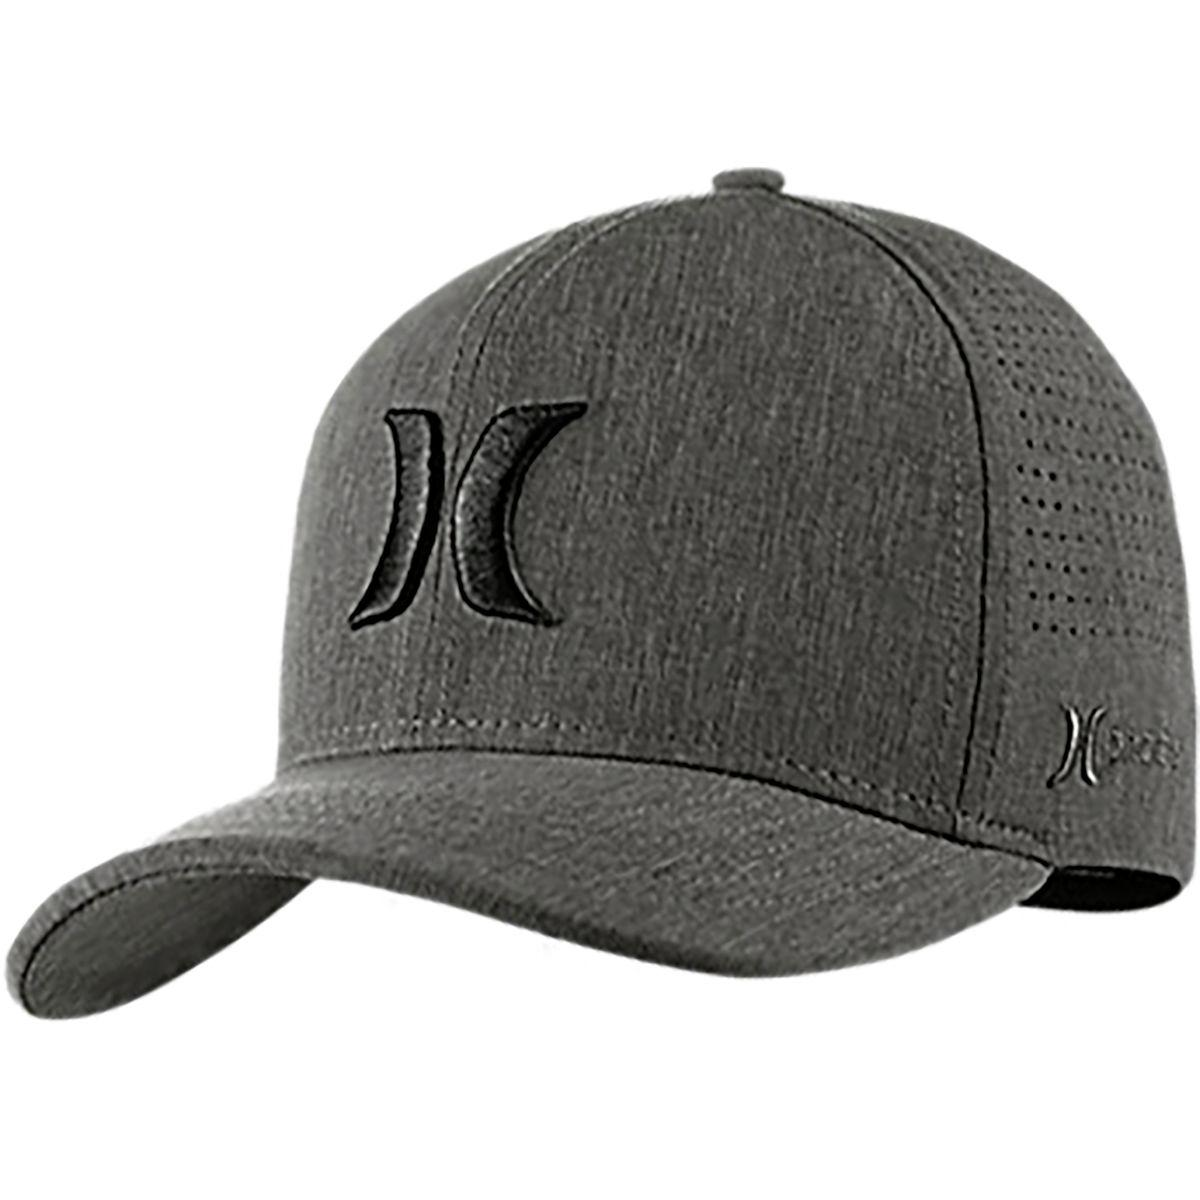 a6c2ed7cdd8e1 ... shop lyst hurley phantom vapor 3.0 hat in black for men 3bd69 9f684